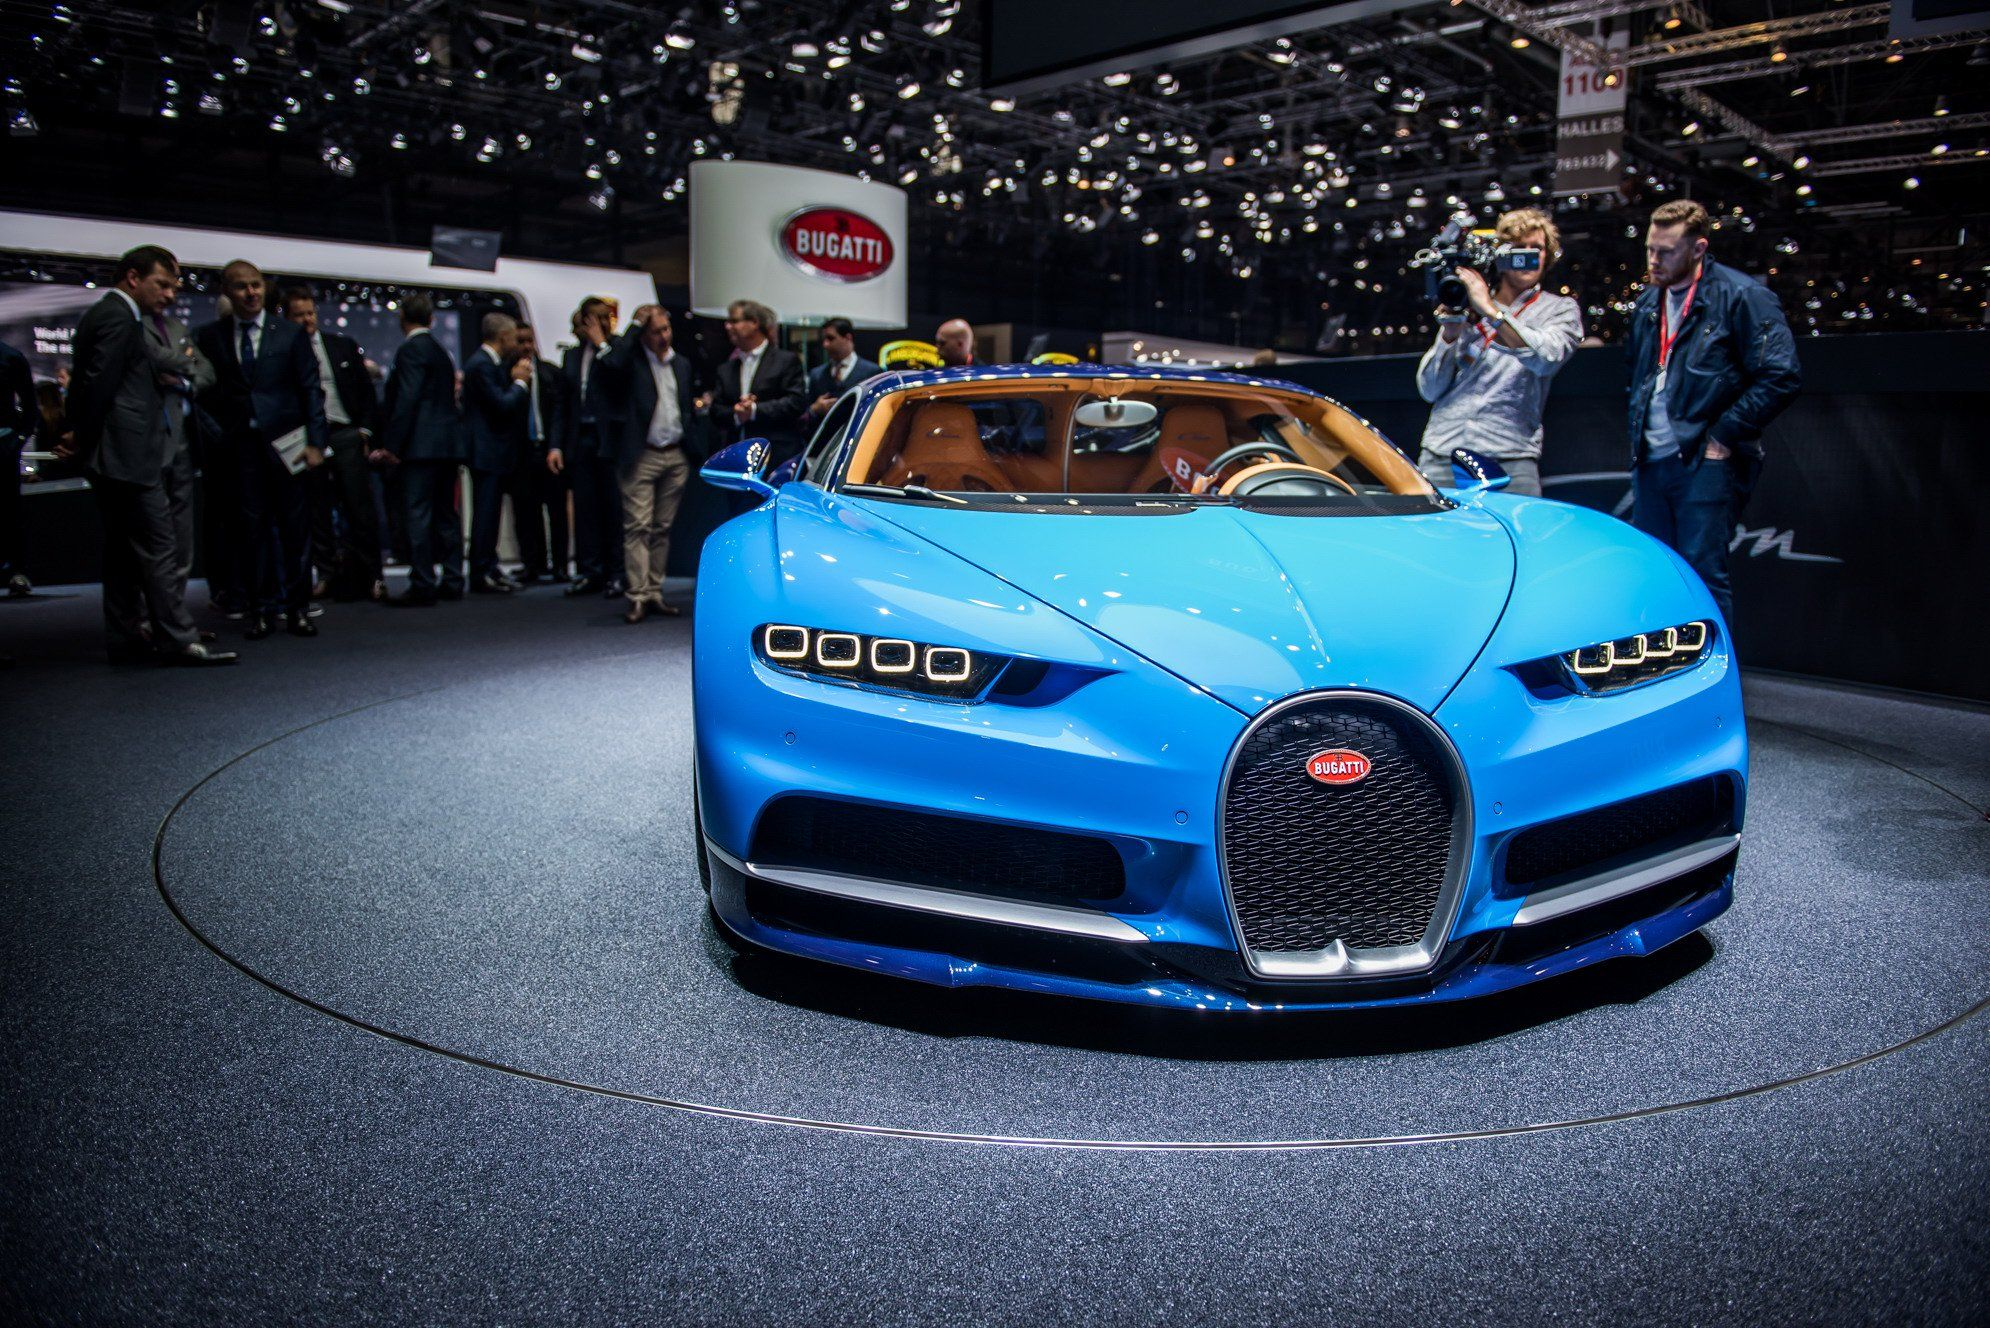 Pin By Best Of World On Top 10 Expensive And Featured Cars Of The World Bugatti Chiron Bugatti Sports Car